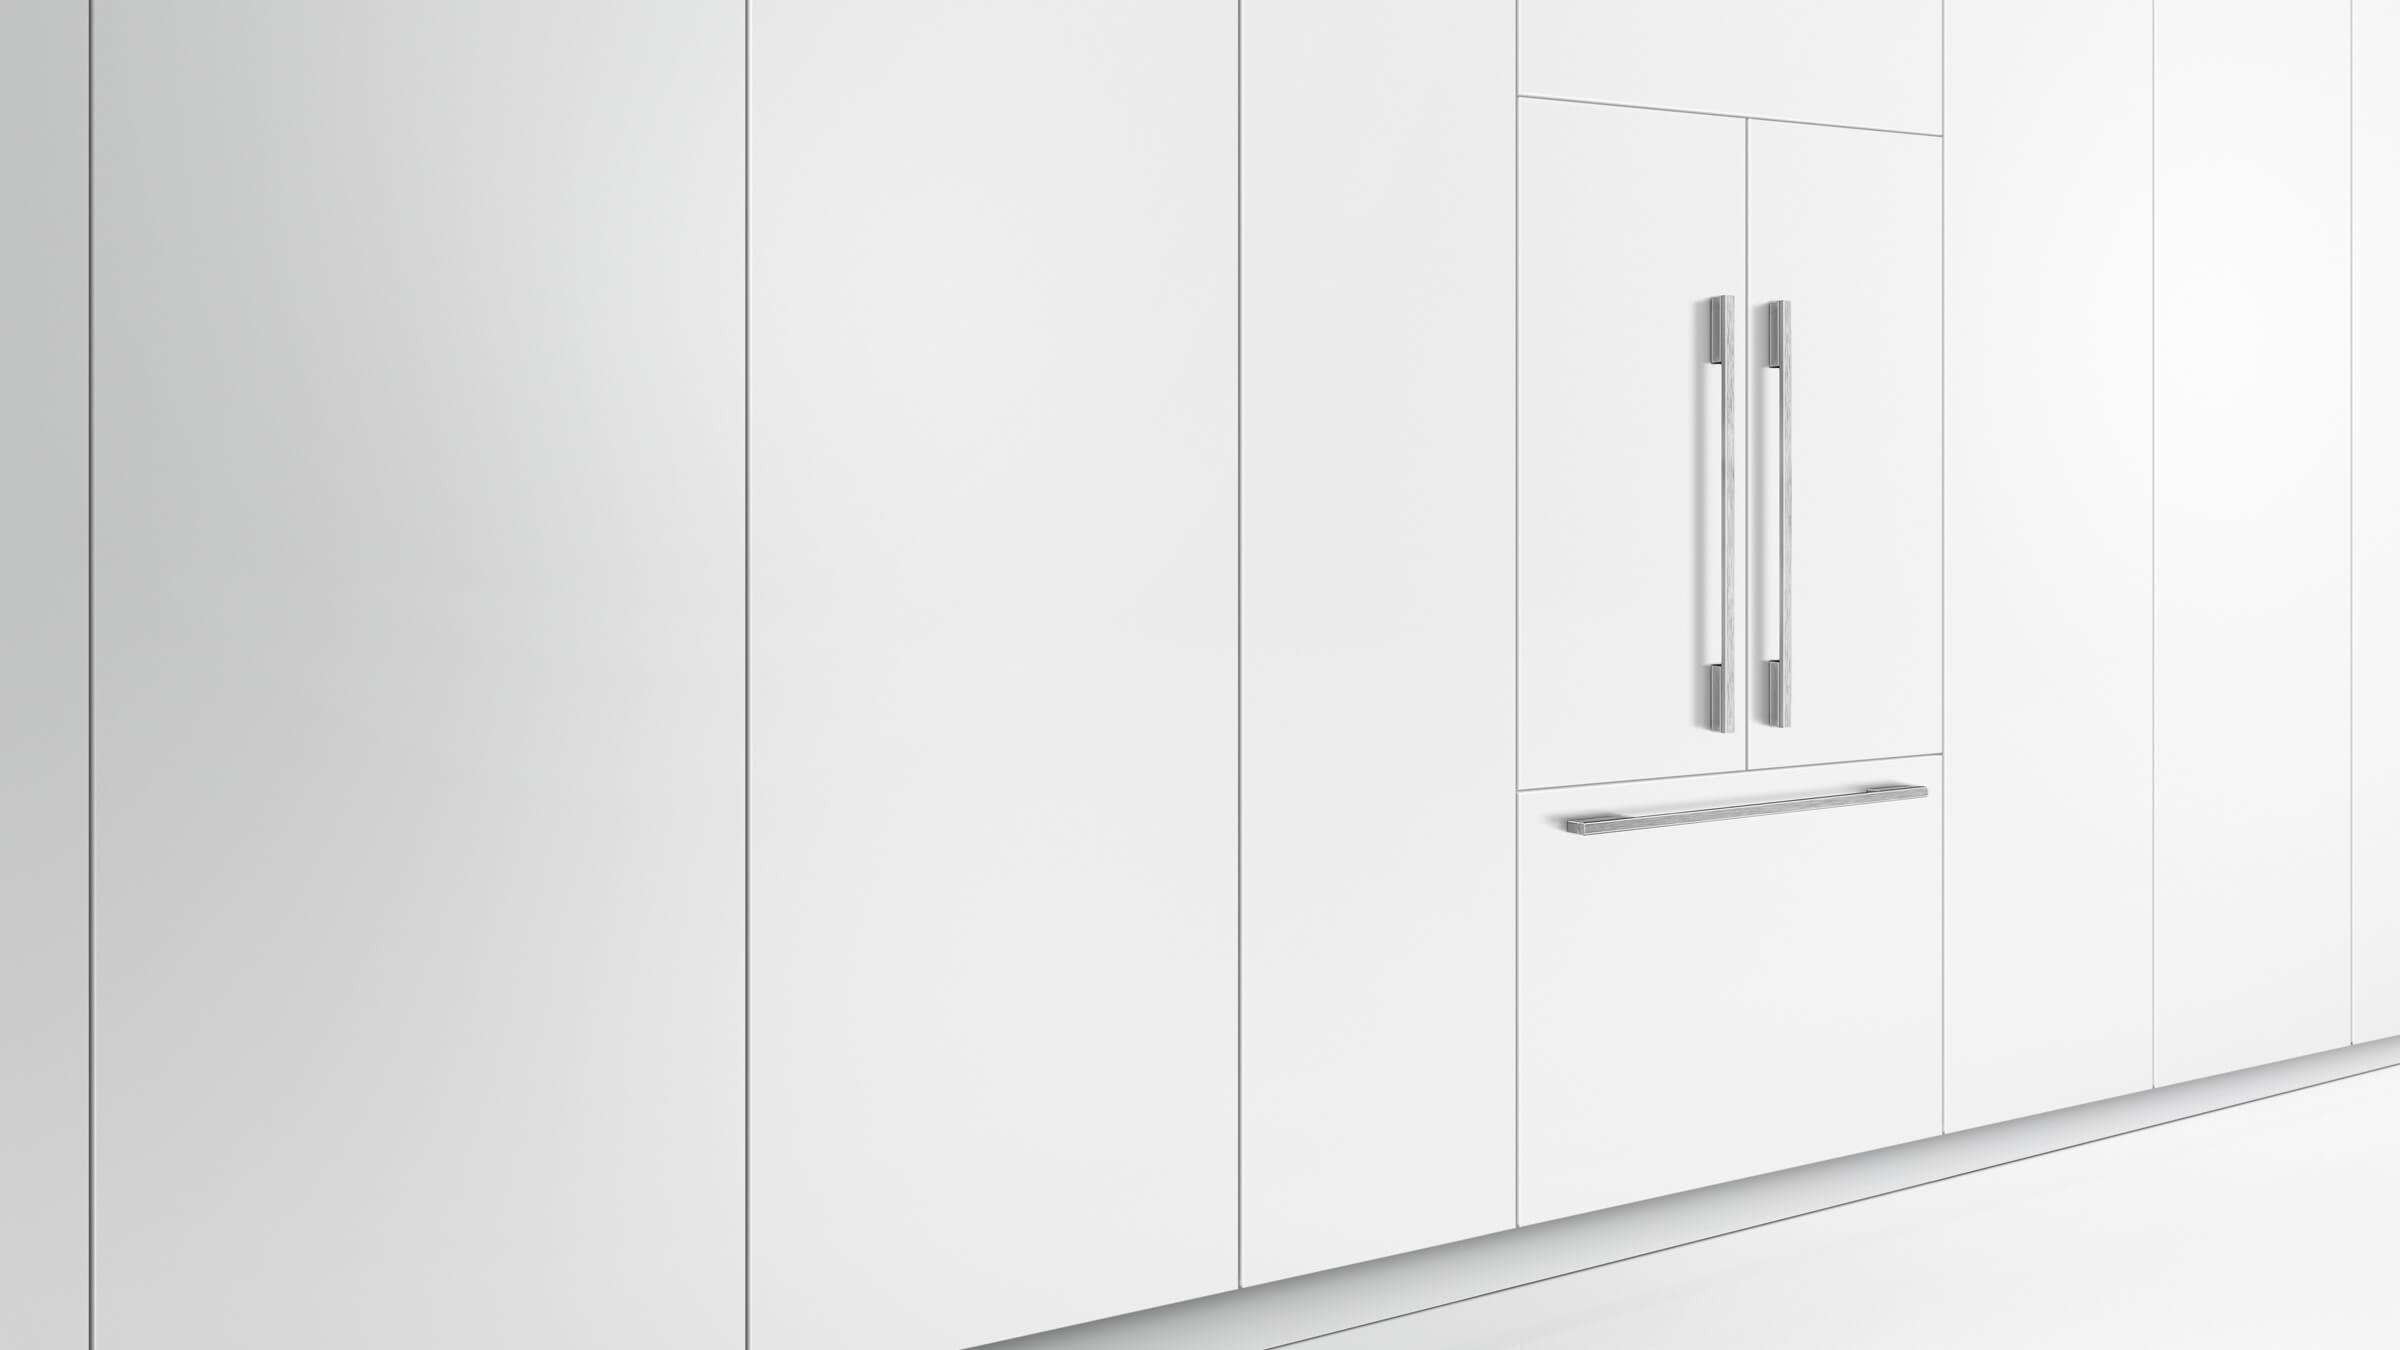 RS90A1 ActiveSmart™ Fridge 900mm French Door American Style